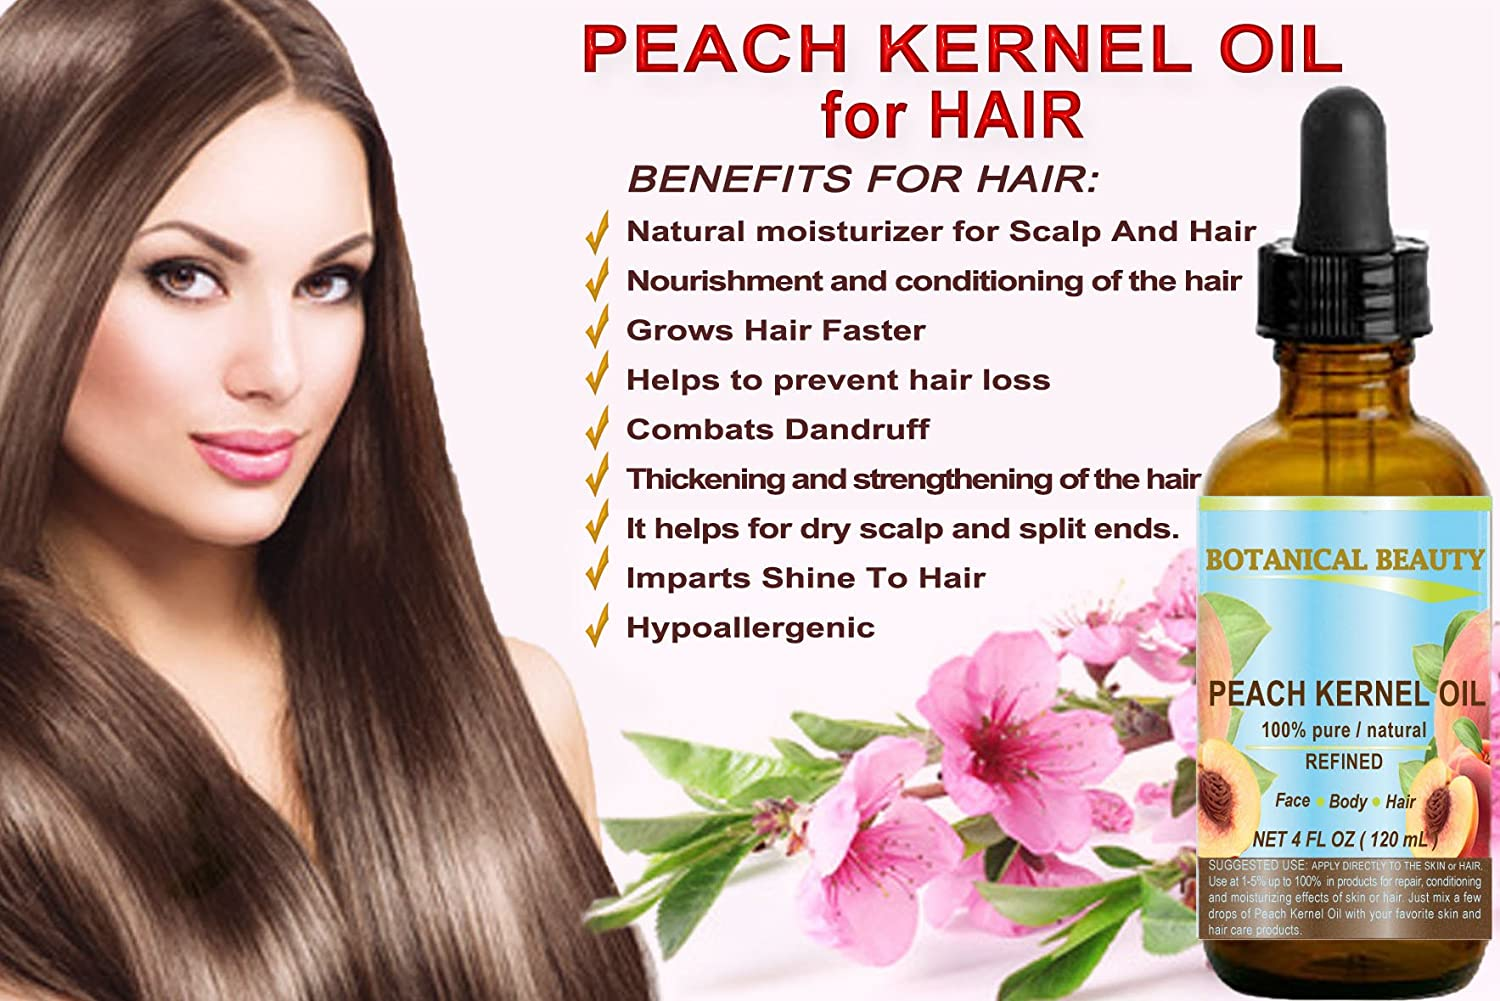 The use of an extract of peach pits in cosmetology